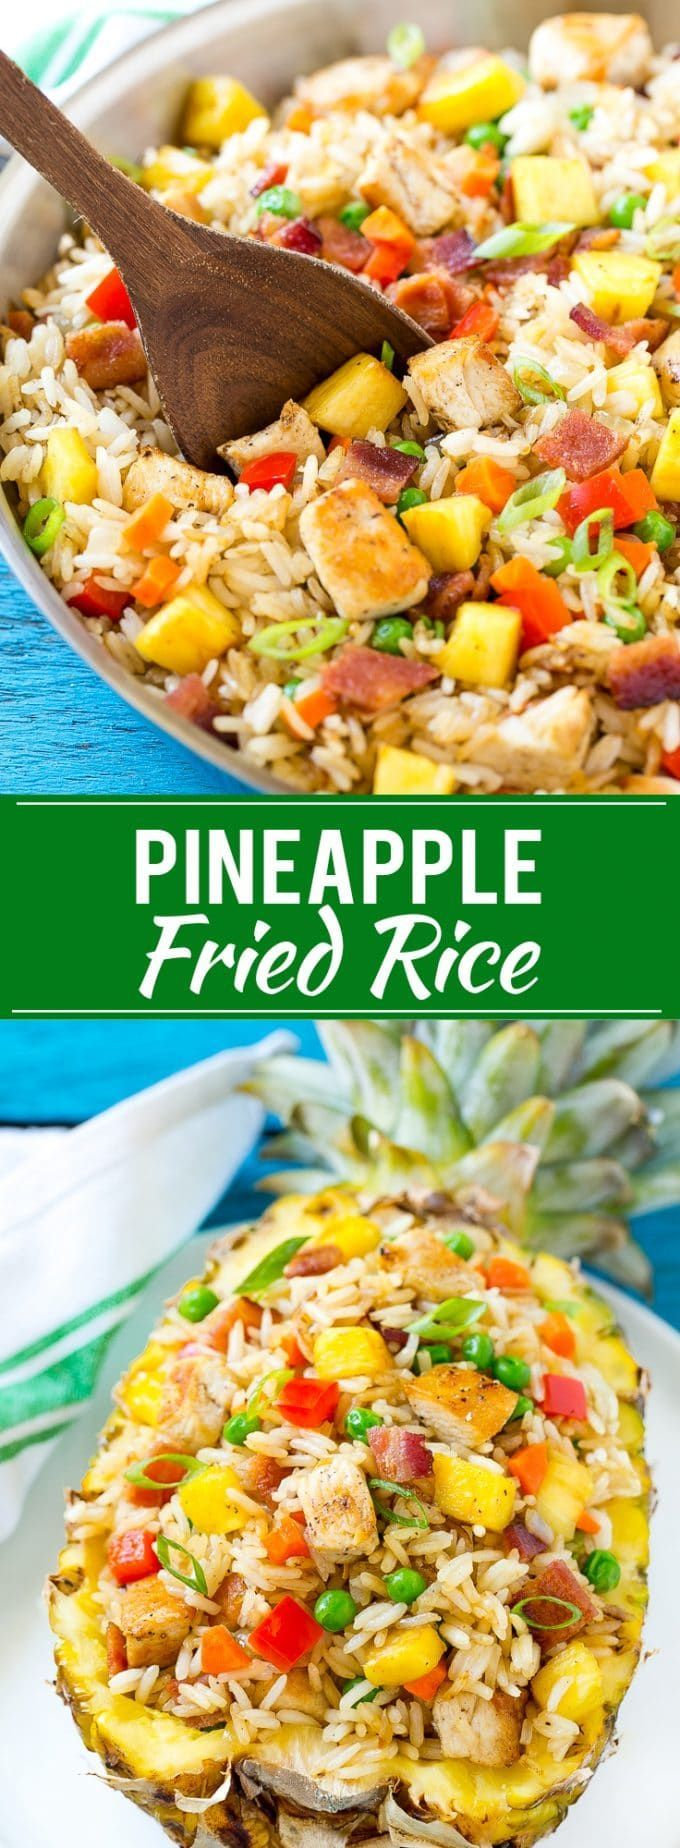 Pineapple Fried Rice Recipe | Easy Fried Rice | Pineapple Recipe | Side Dish via @dinneratthezoo